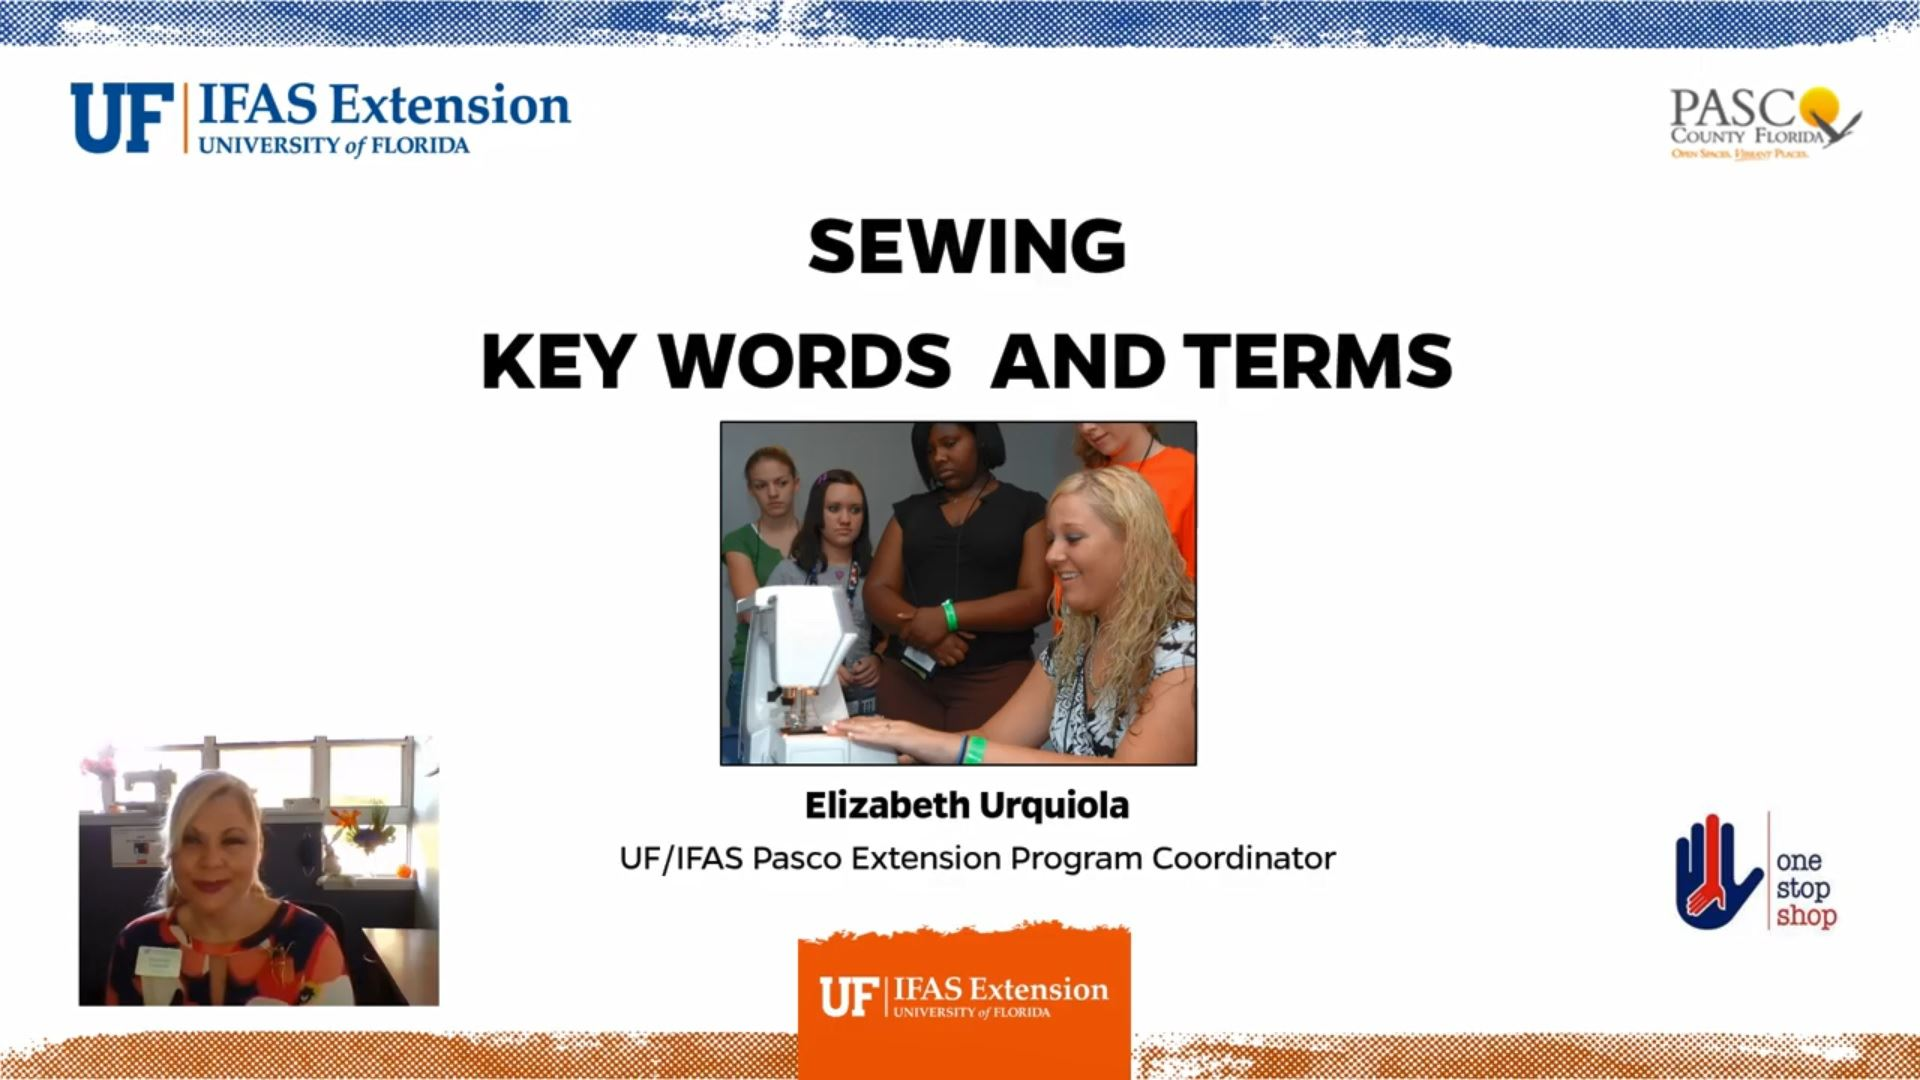 UF IFAS Sewing Key Words and Terms Opens in new window